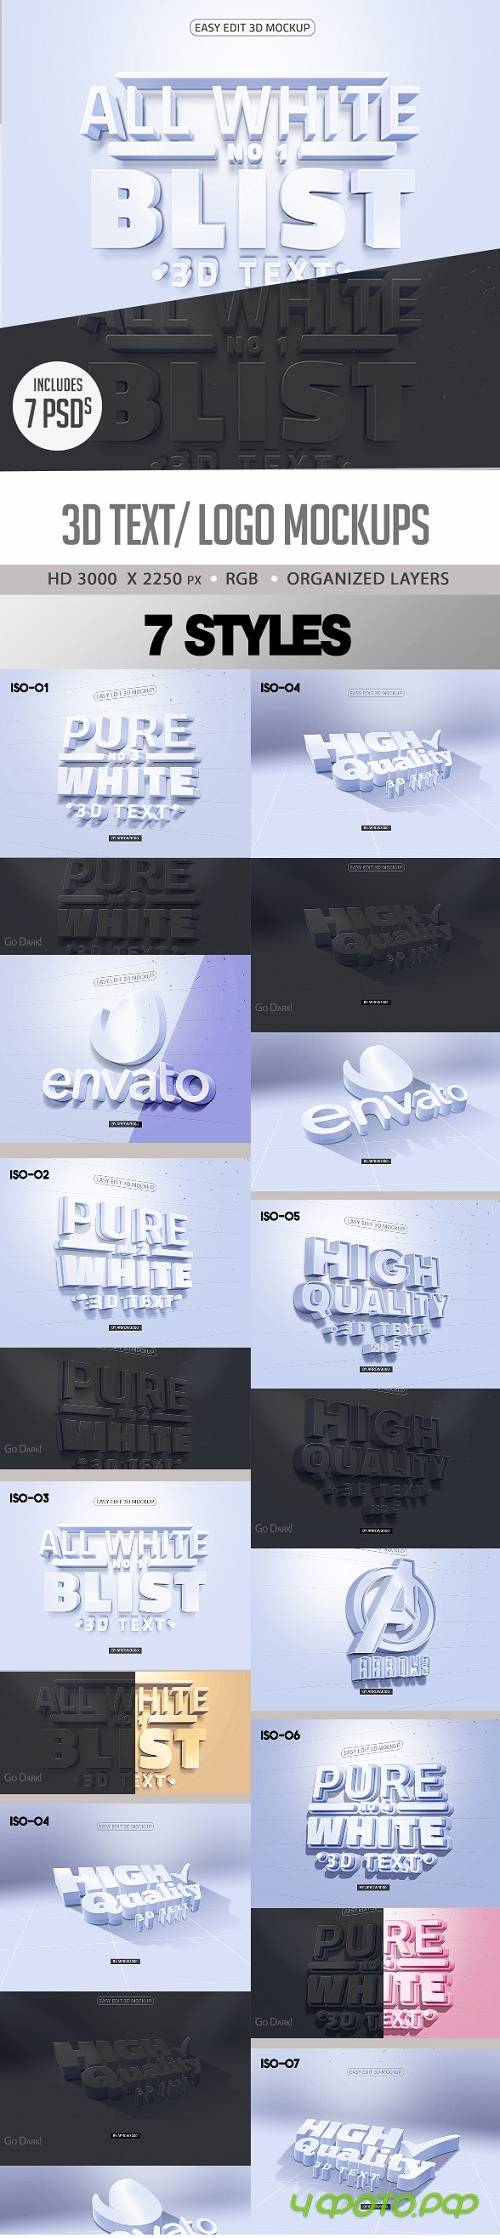 Pure White 3D Text/ Logo Mock up - 23888803